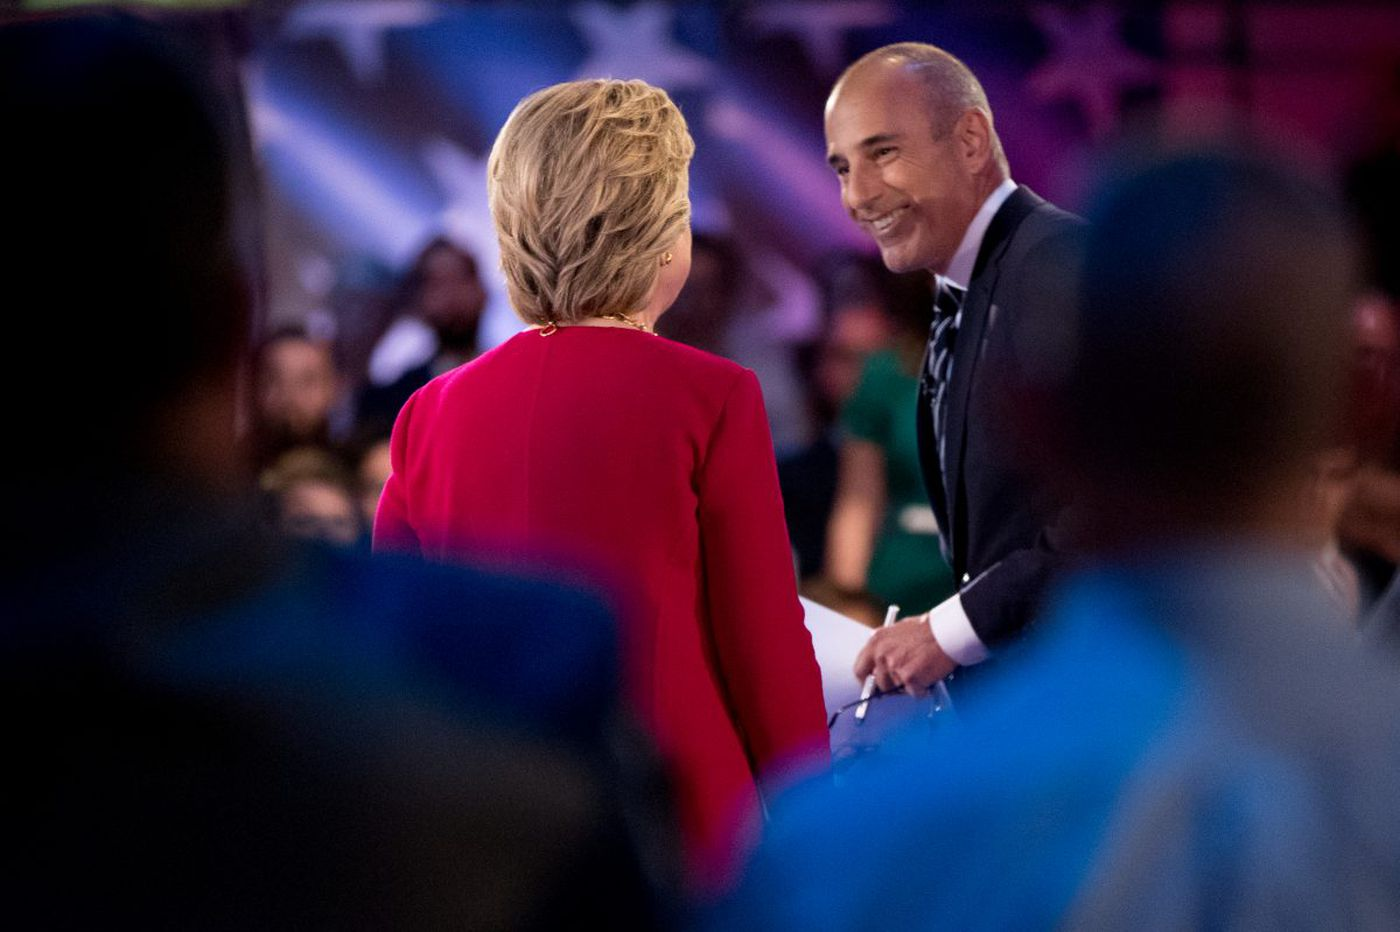 How Matt Lauer's NBC sexually harassed America's TV viewers, and our politics | Will Bunch